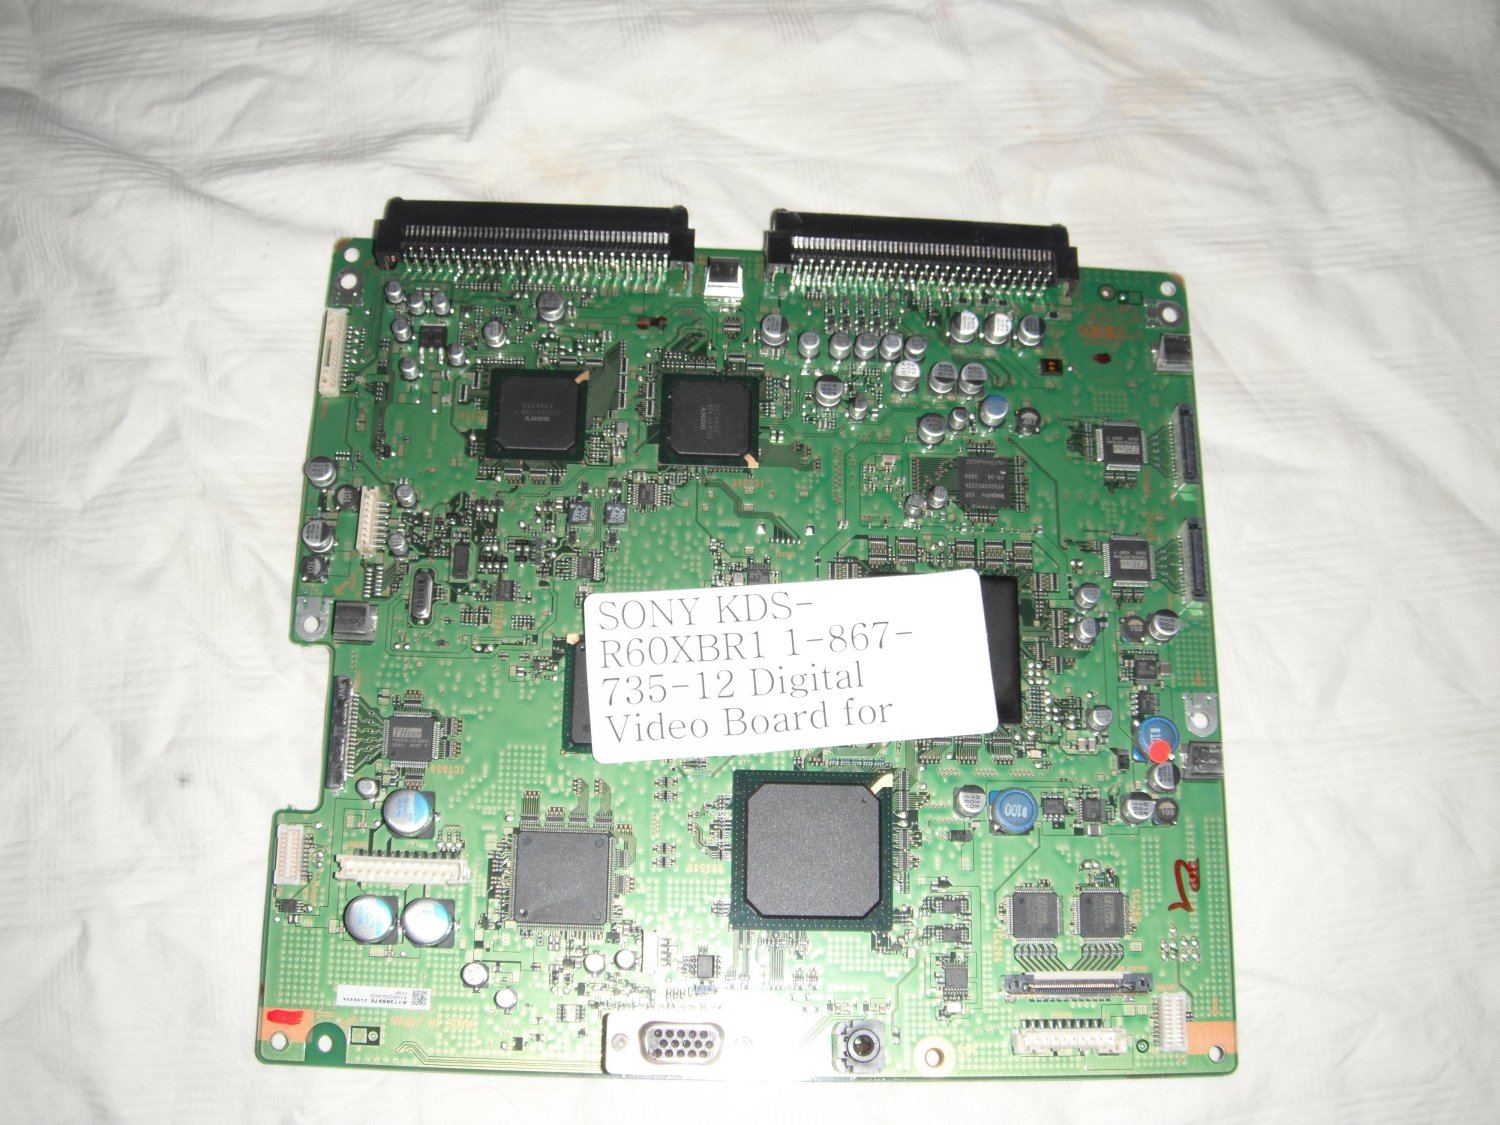 SONY KDS-R60XBR1 1-867-735-12 Digital Video Board for